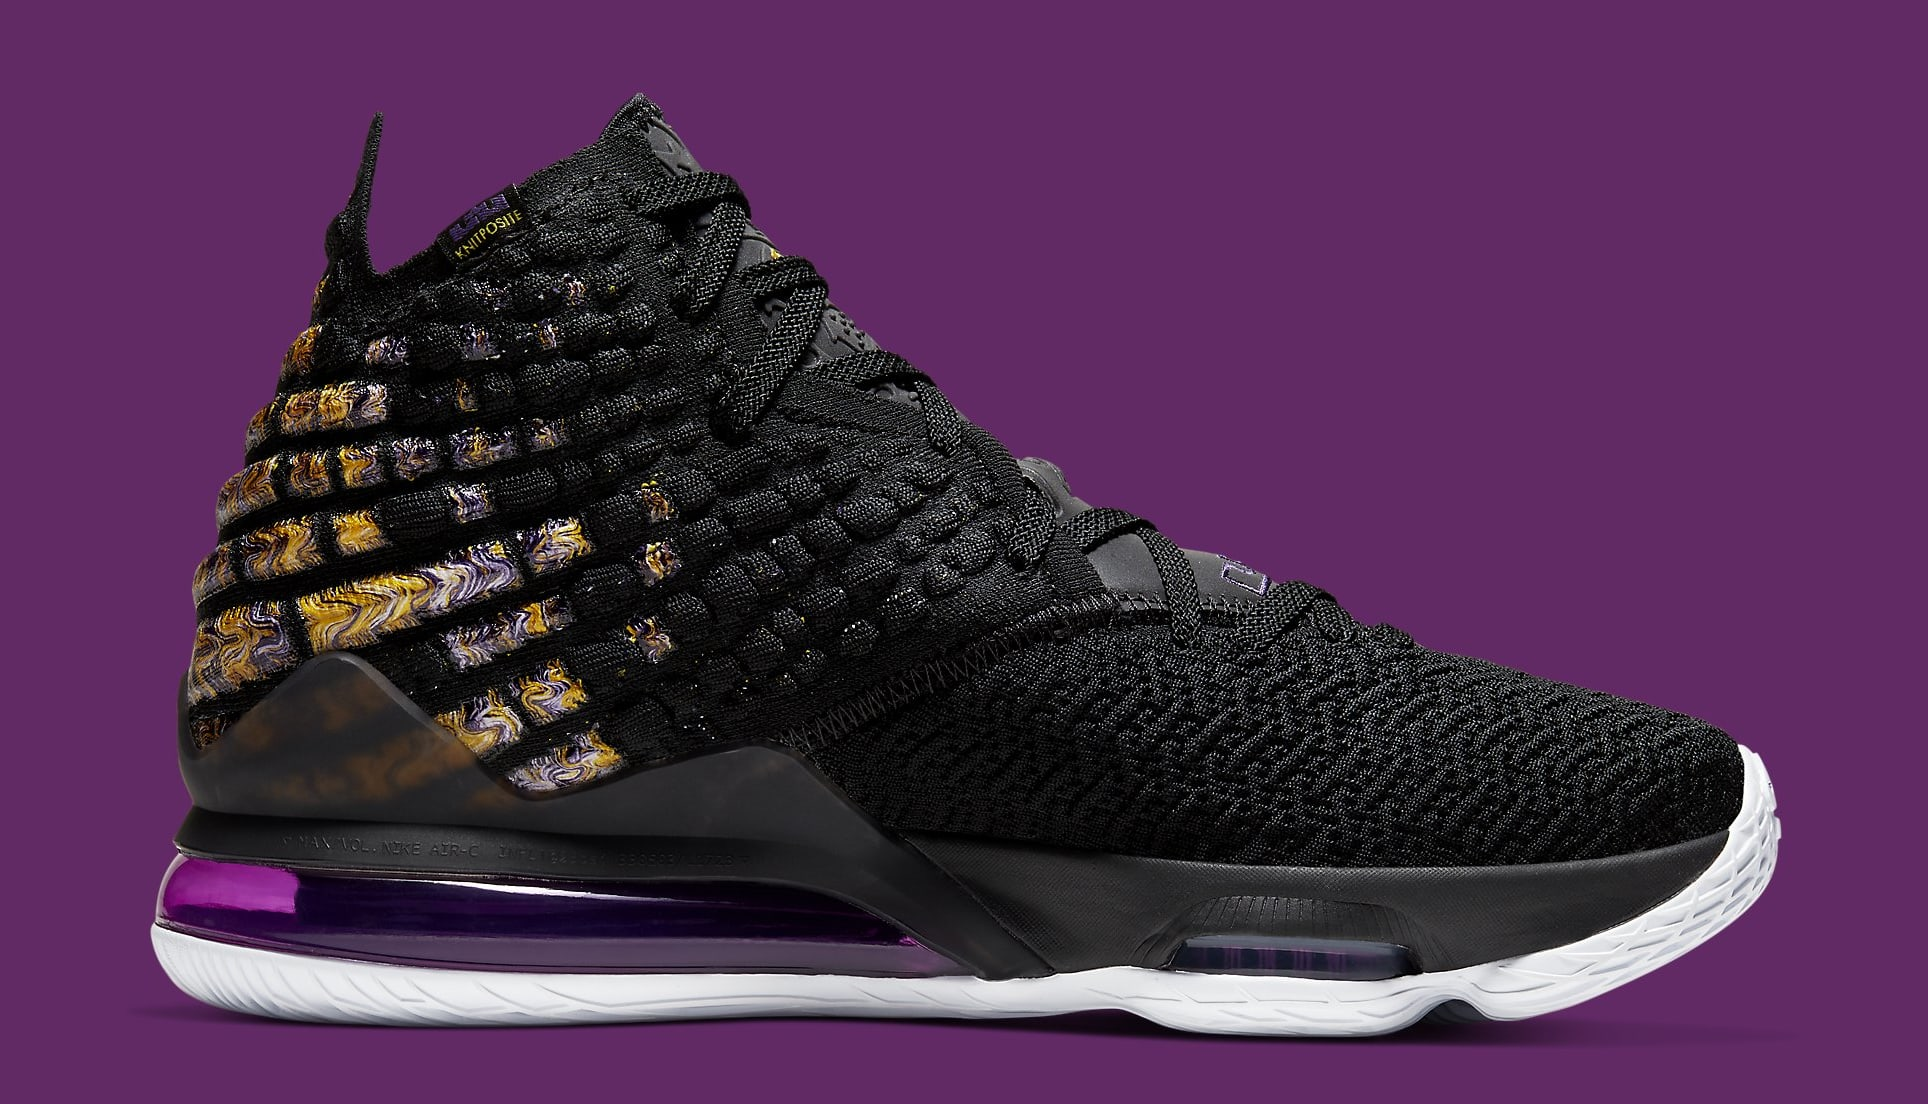 nike-lebron-17-lakers-bq3177-004-medial